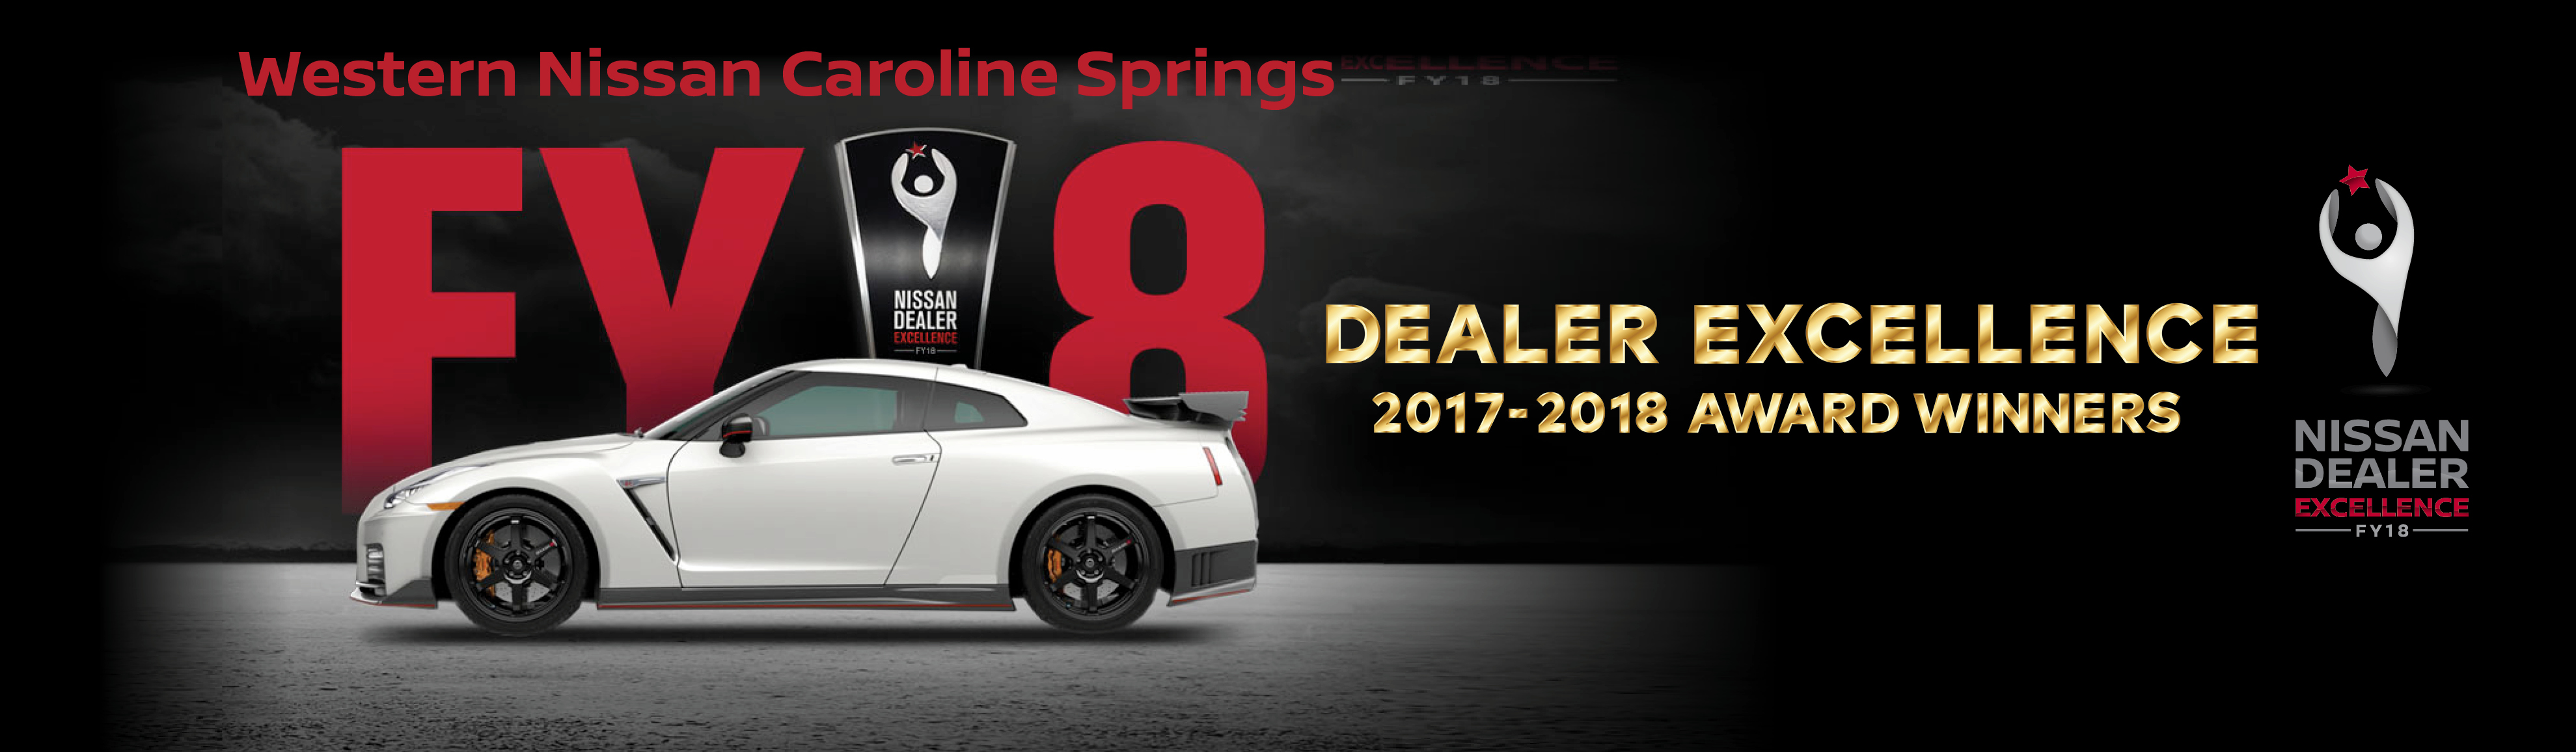 Nissan Dealer Excellence Award for 2017